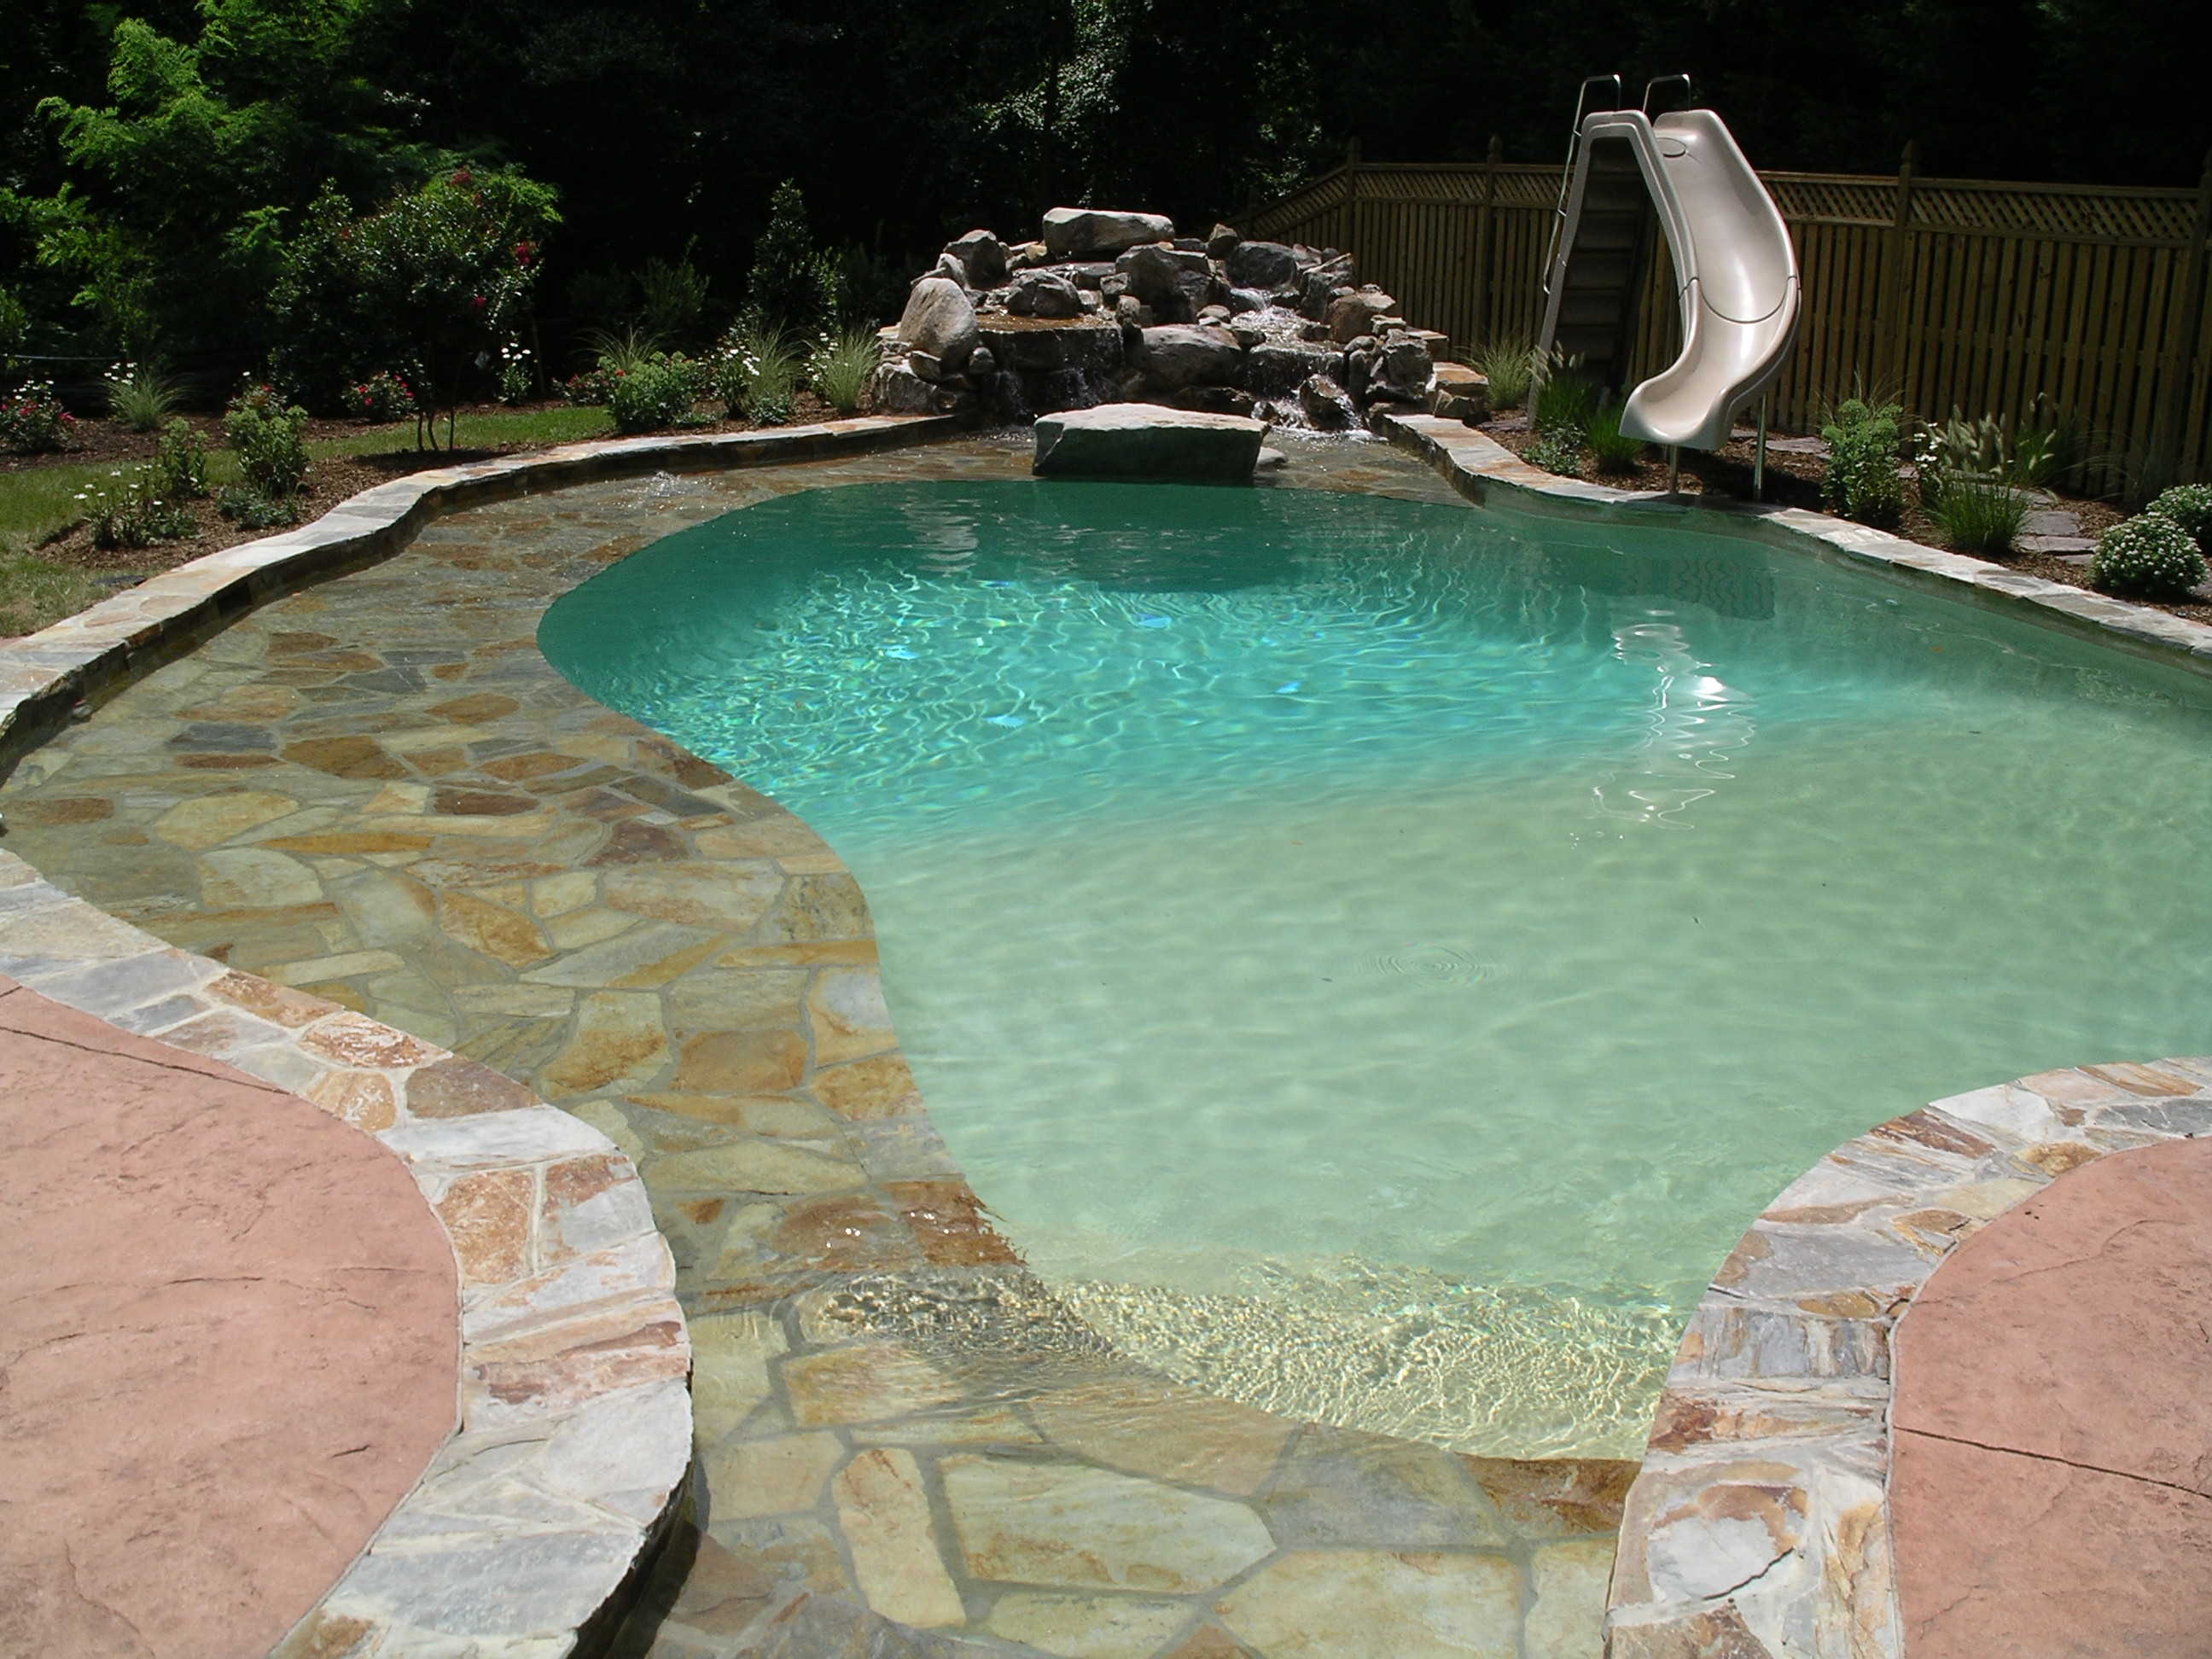 in-ground pool with slide